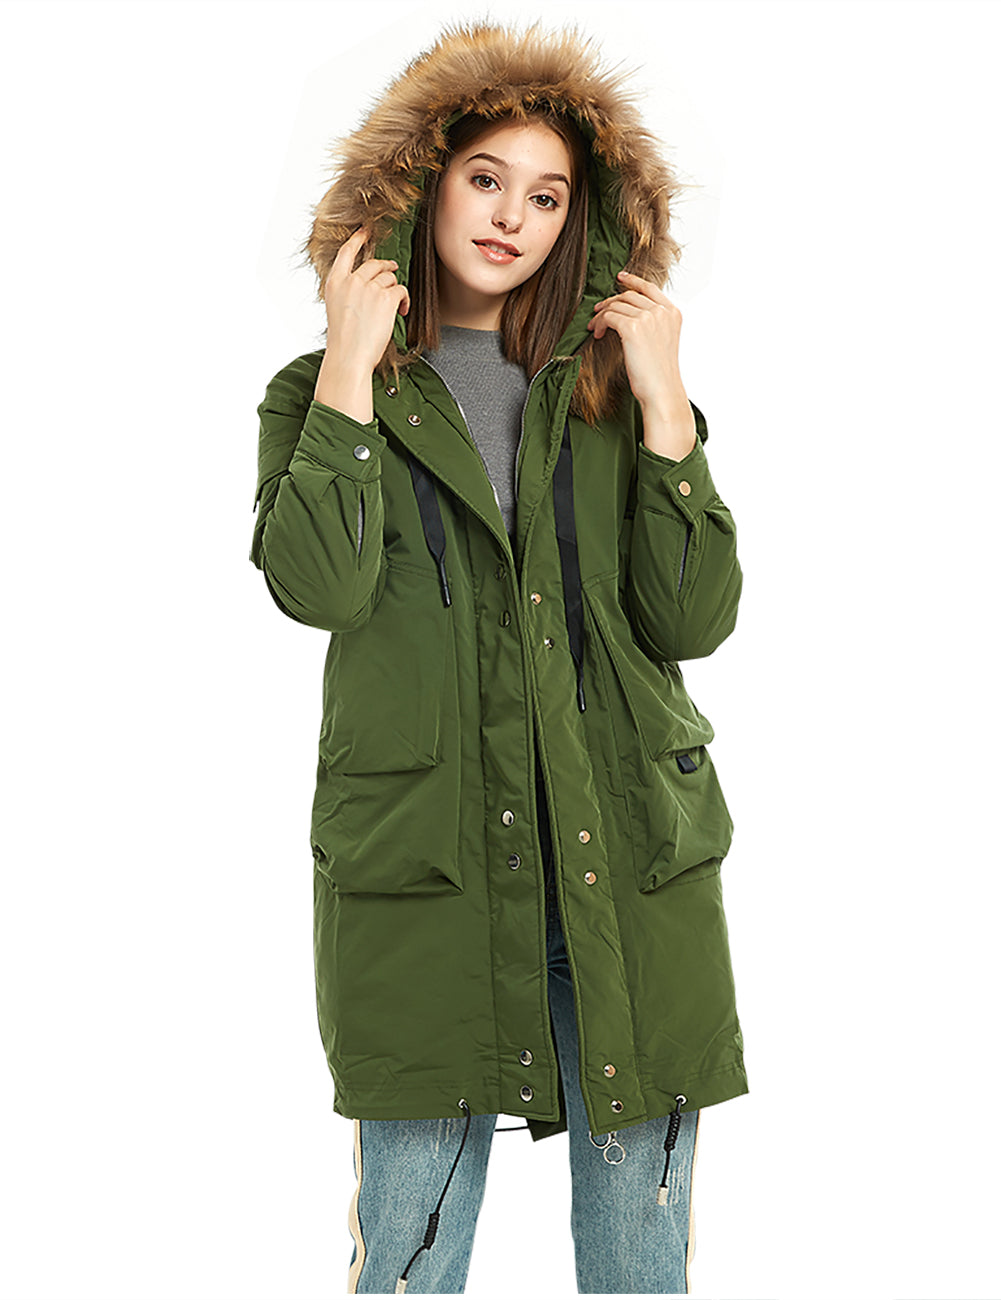 0536ddf01 ilishop Women's Thickened Long Down Jacket Hooded Parka Winter Puffer